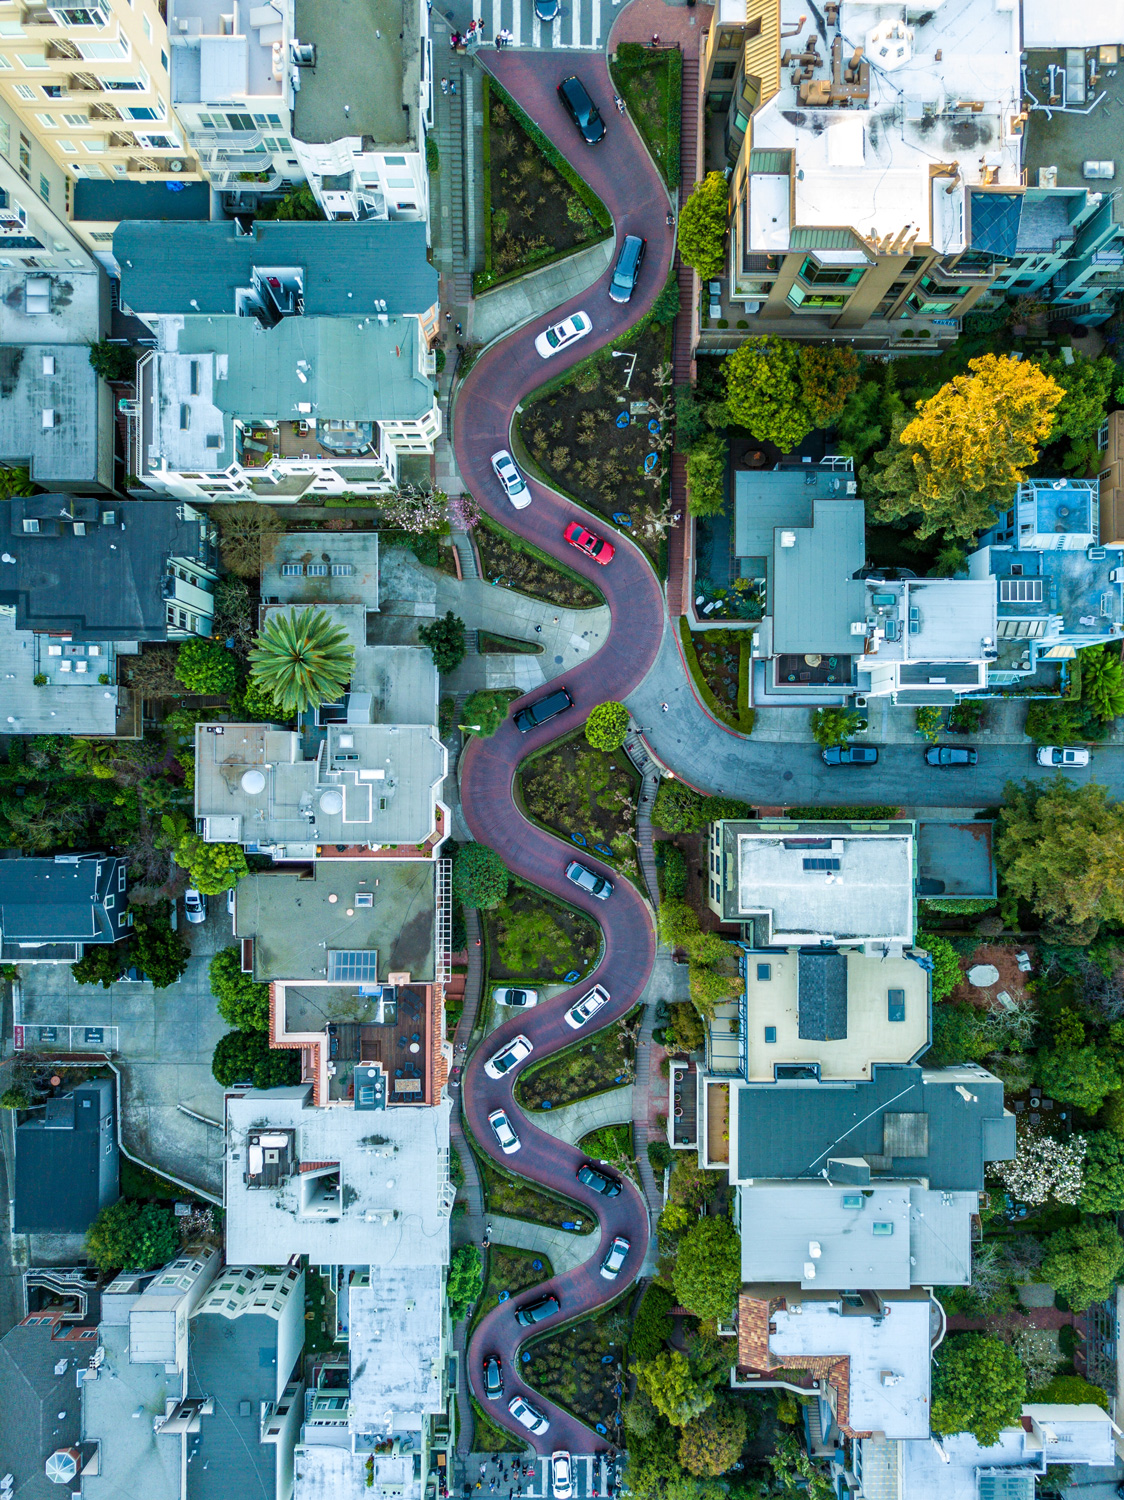 An aerial  view of the sindy Lombard Street in San Francisco with a number of cars traveling down the road.